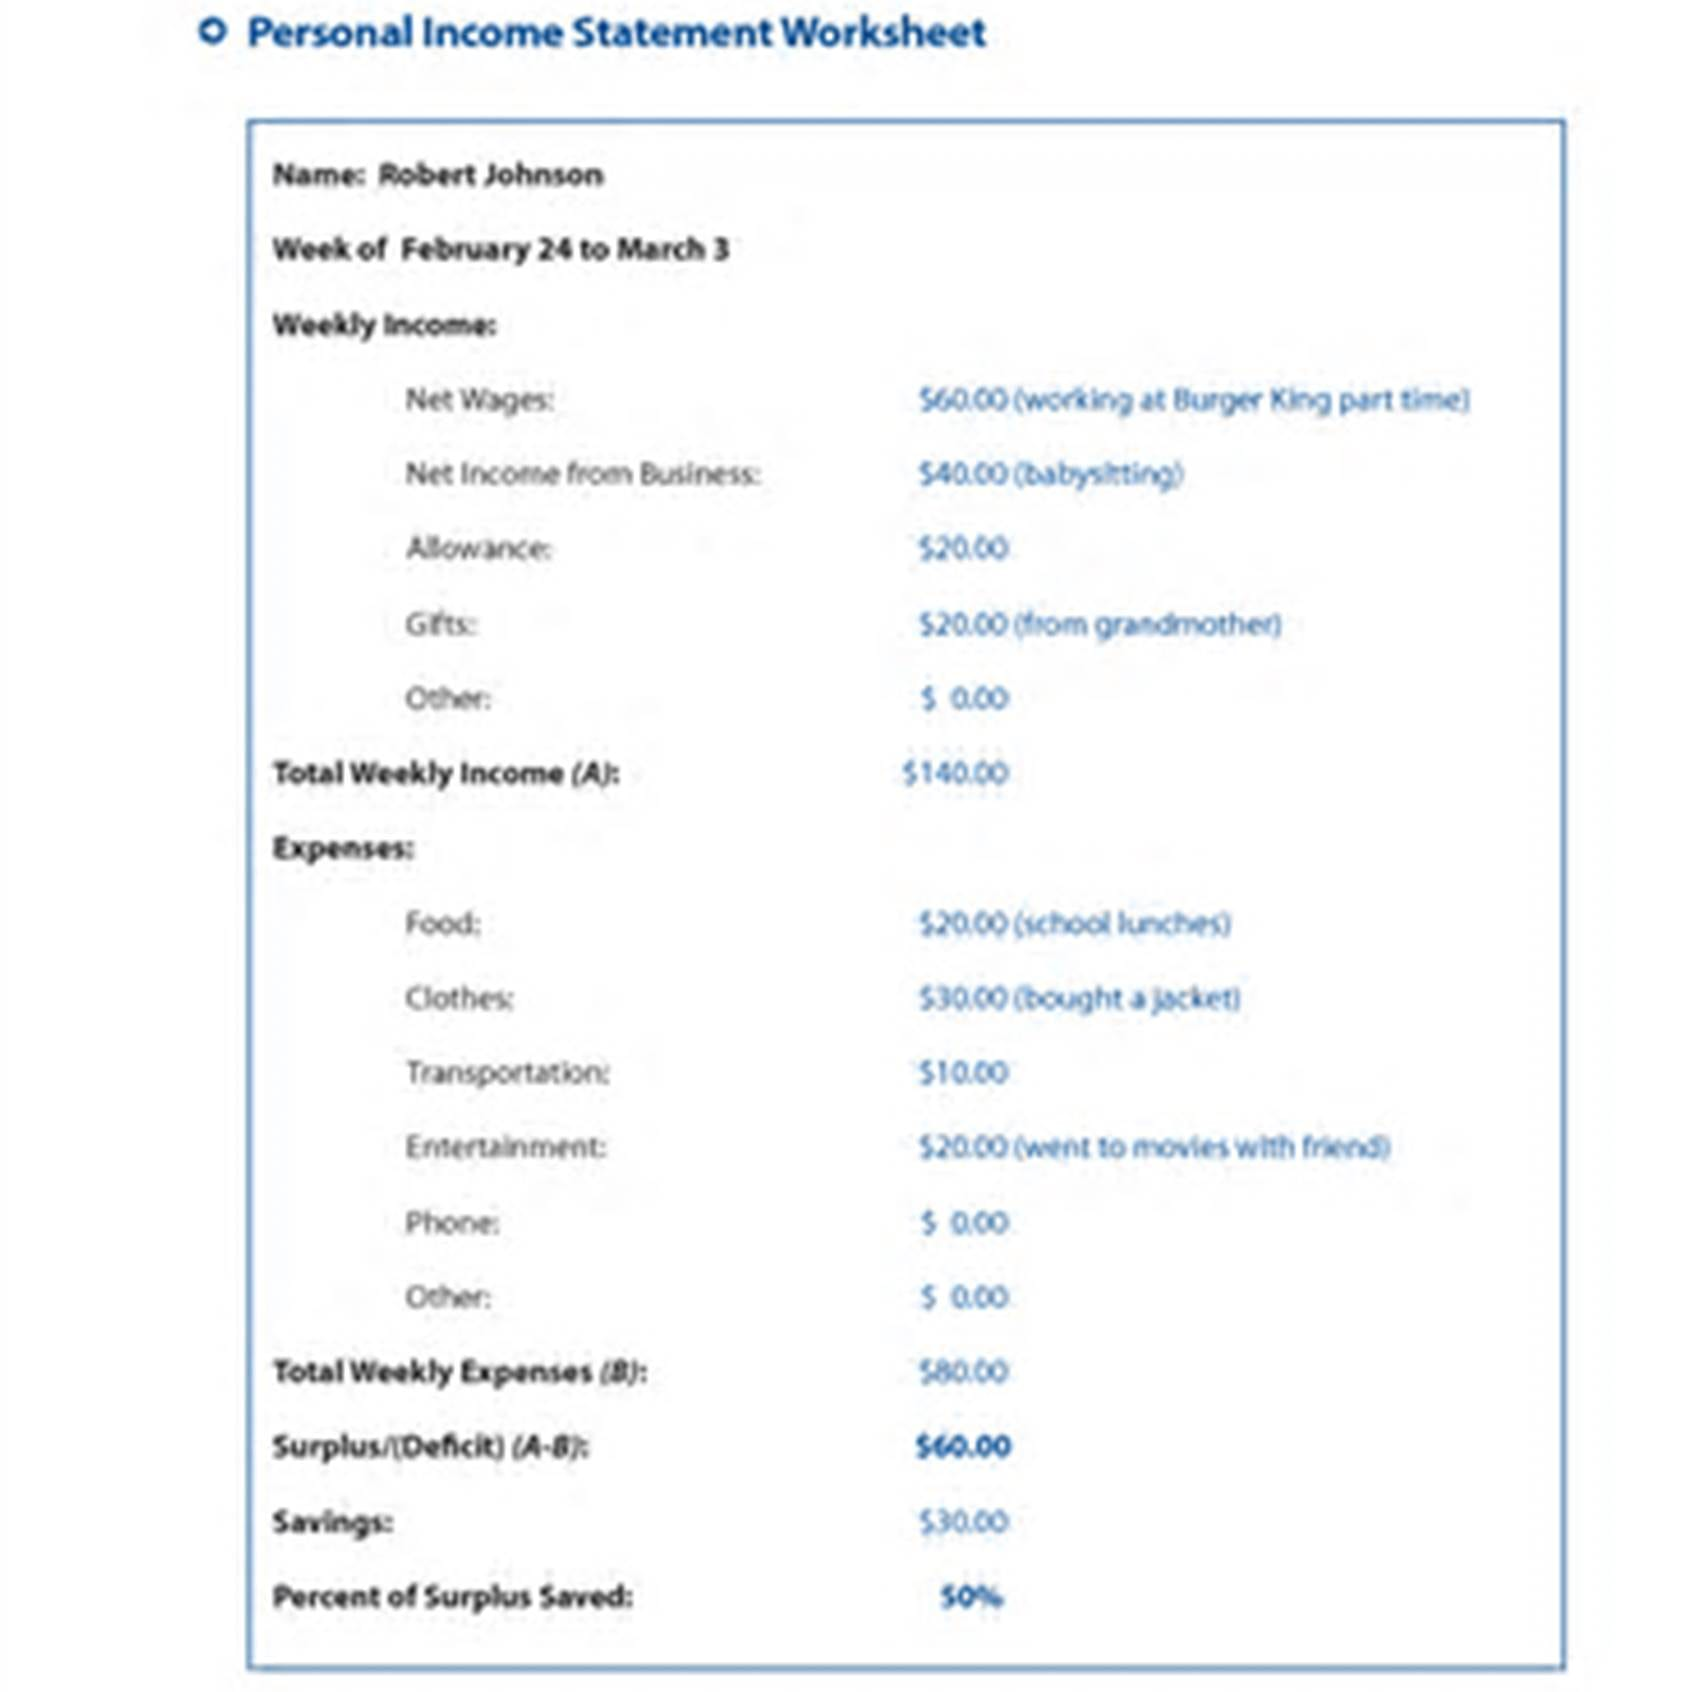 Income Statement Worksheet For Students Income Statement Worksheet Income Statement Template Spreadsheet Templates for Busines Income Statement Template Spreadsheet Templates for Busines Retained Earnings Worksheet